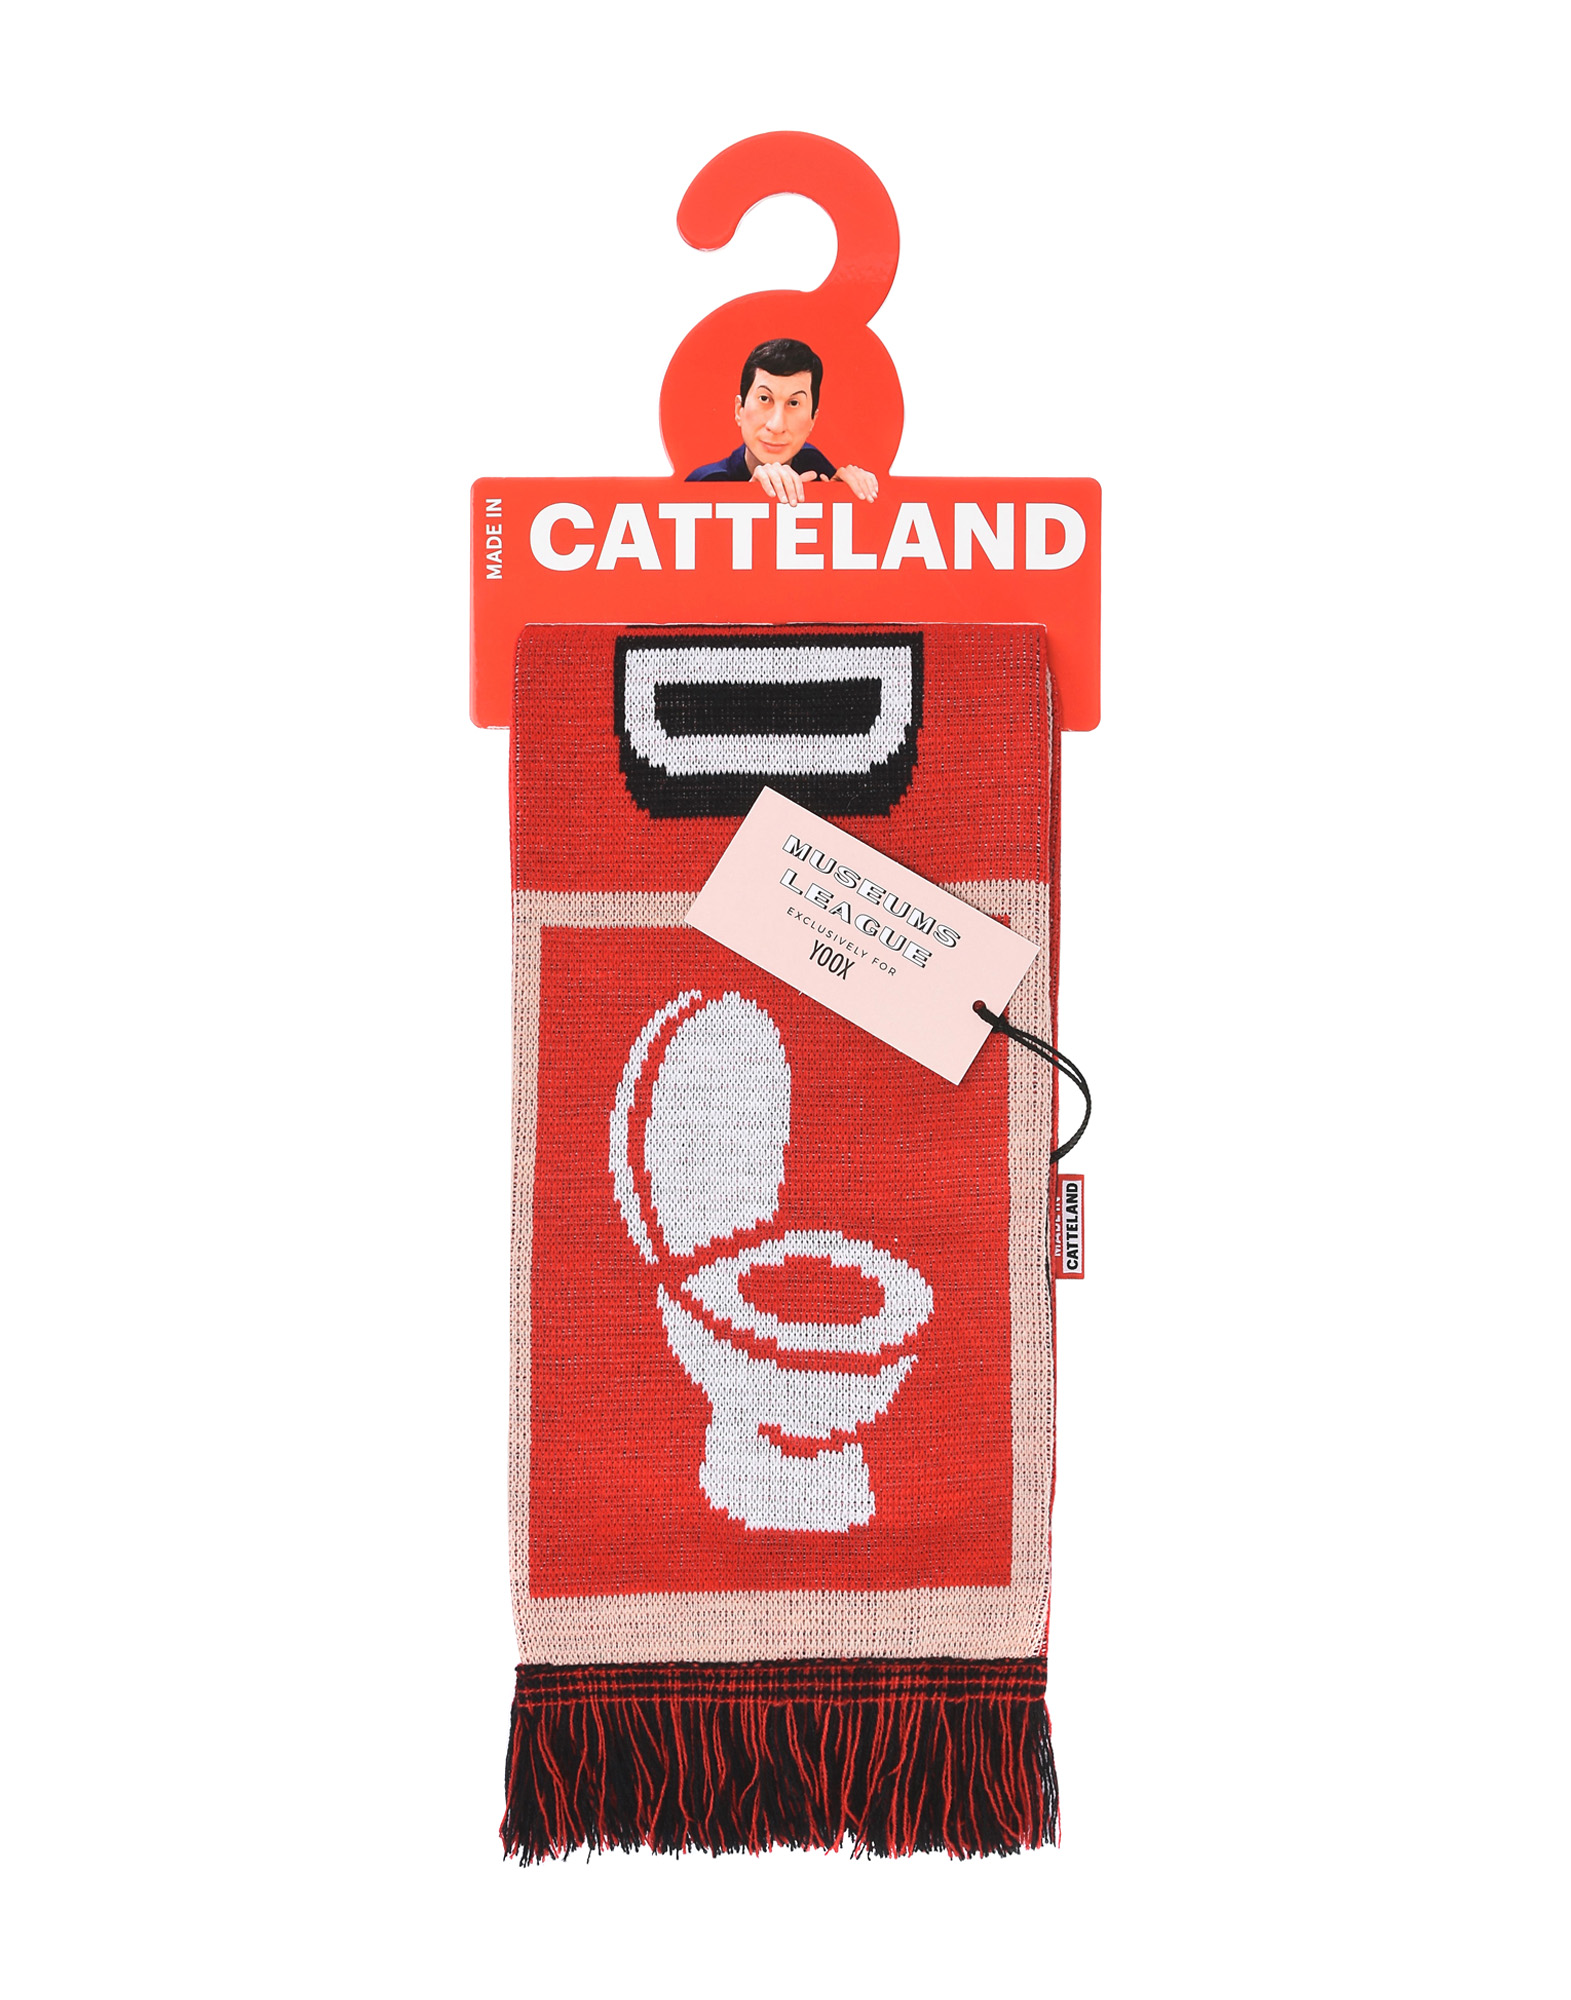 Made in Catteland, scarf exclusively available on YOOX